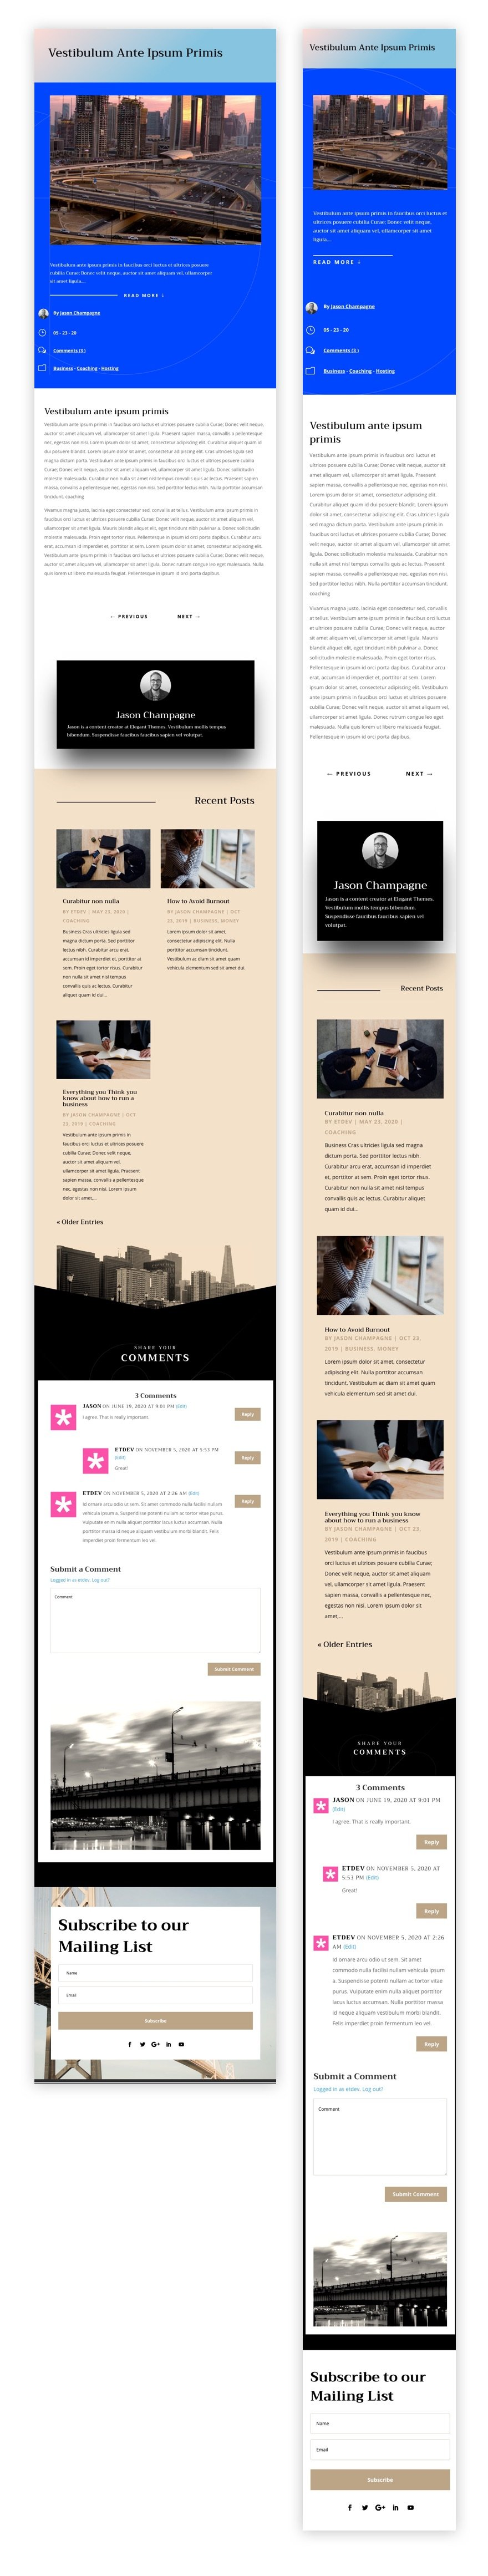 download-a-free-blog-post-template-for-divis-engineering-firm-layout-pack-1 Download a FREE Blog Post Template for Divi's Engineering Firm Layout Pack